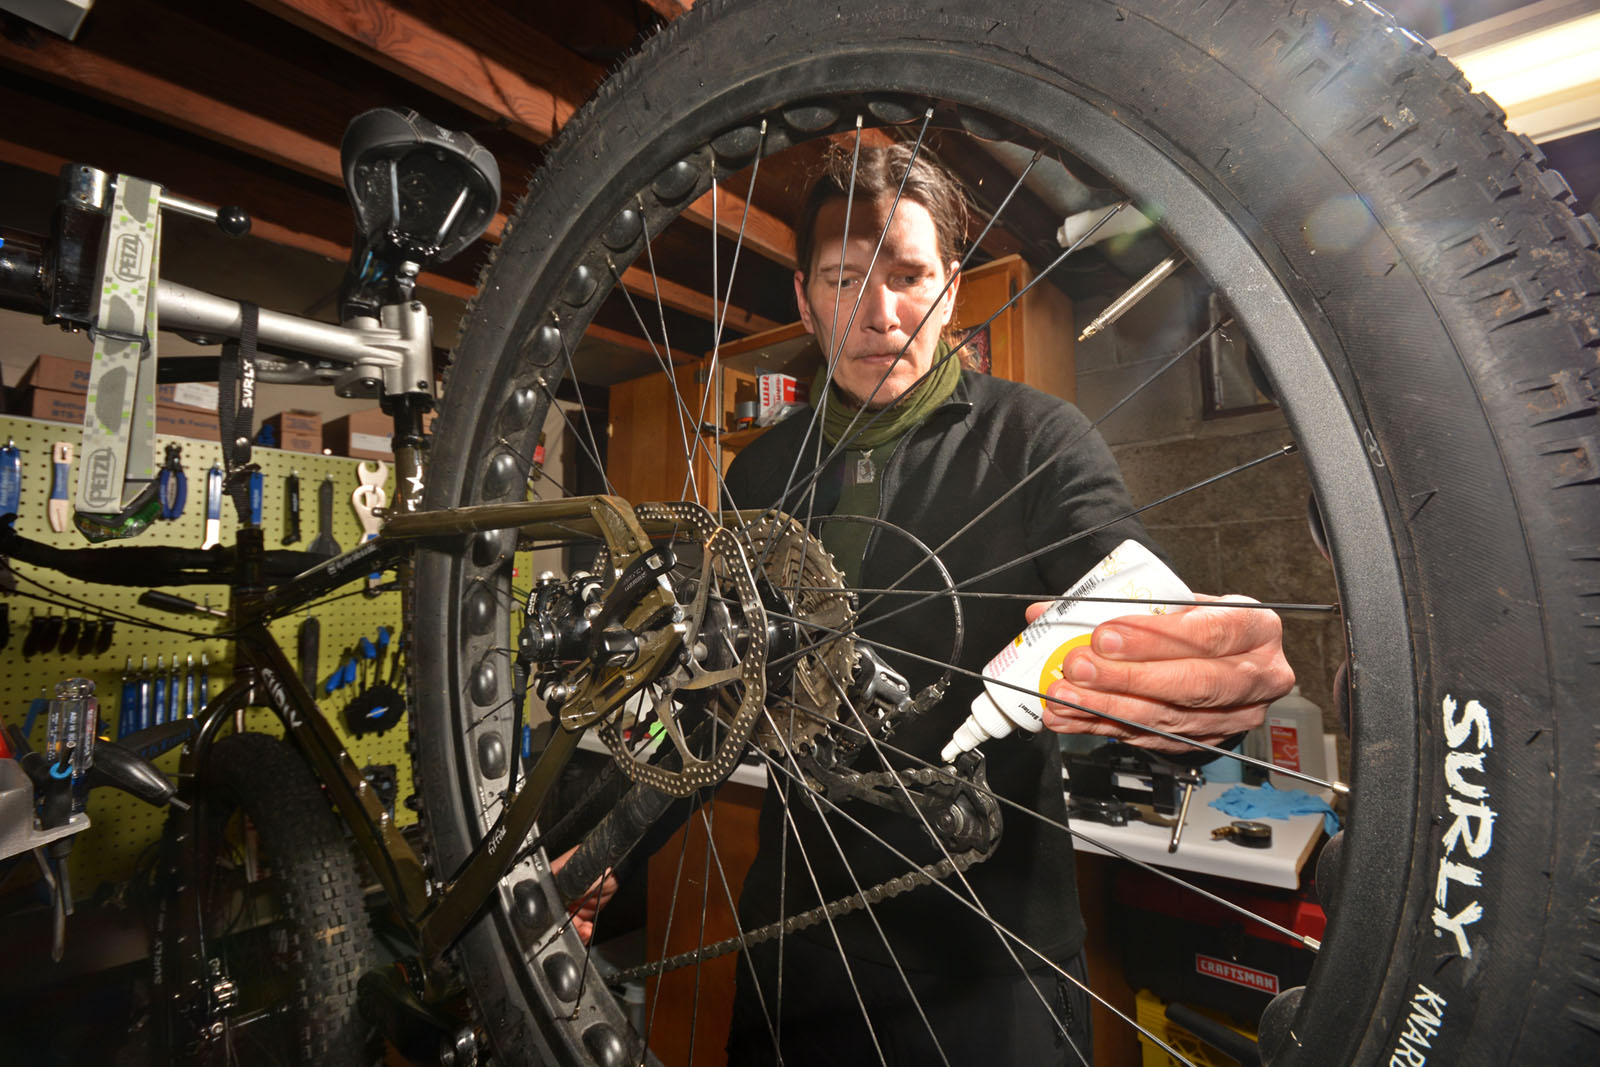 Shawne Camp  of Spa City Bicycleworks in Saratoga Springs doing a tune-up.  Dave Kraus